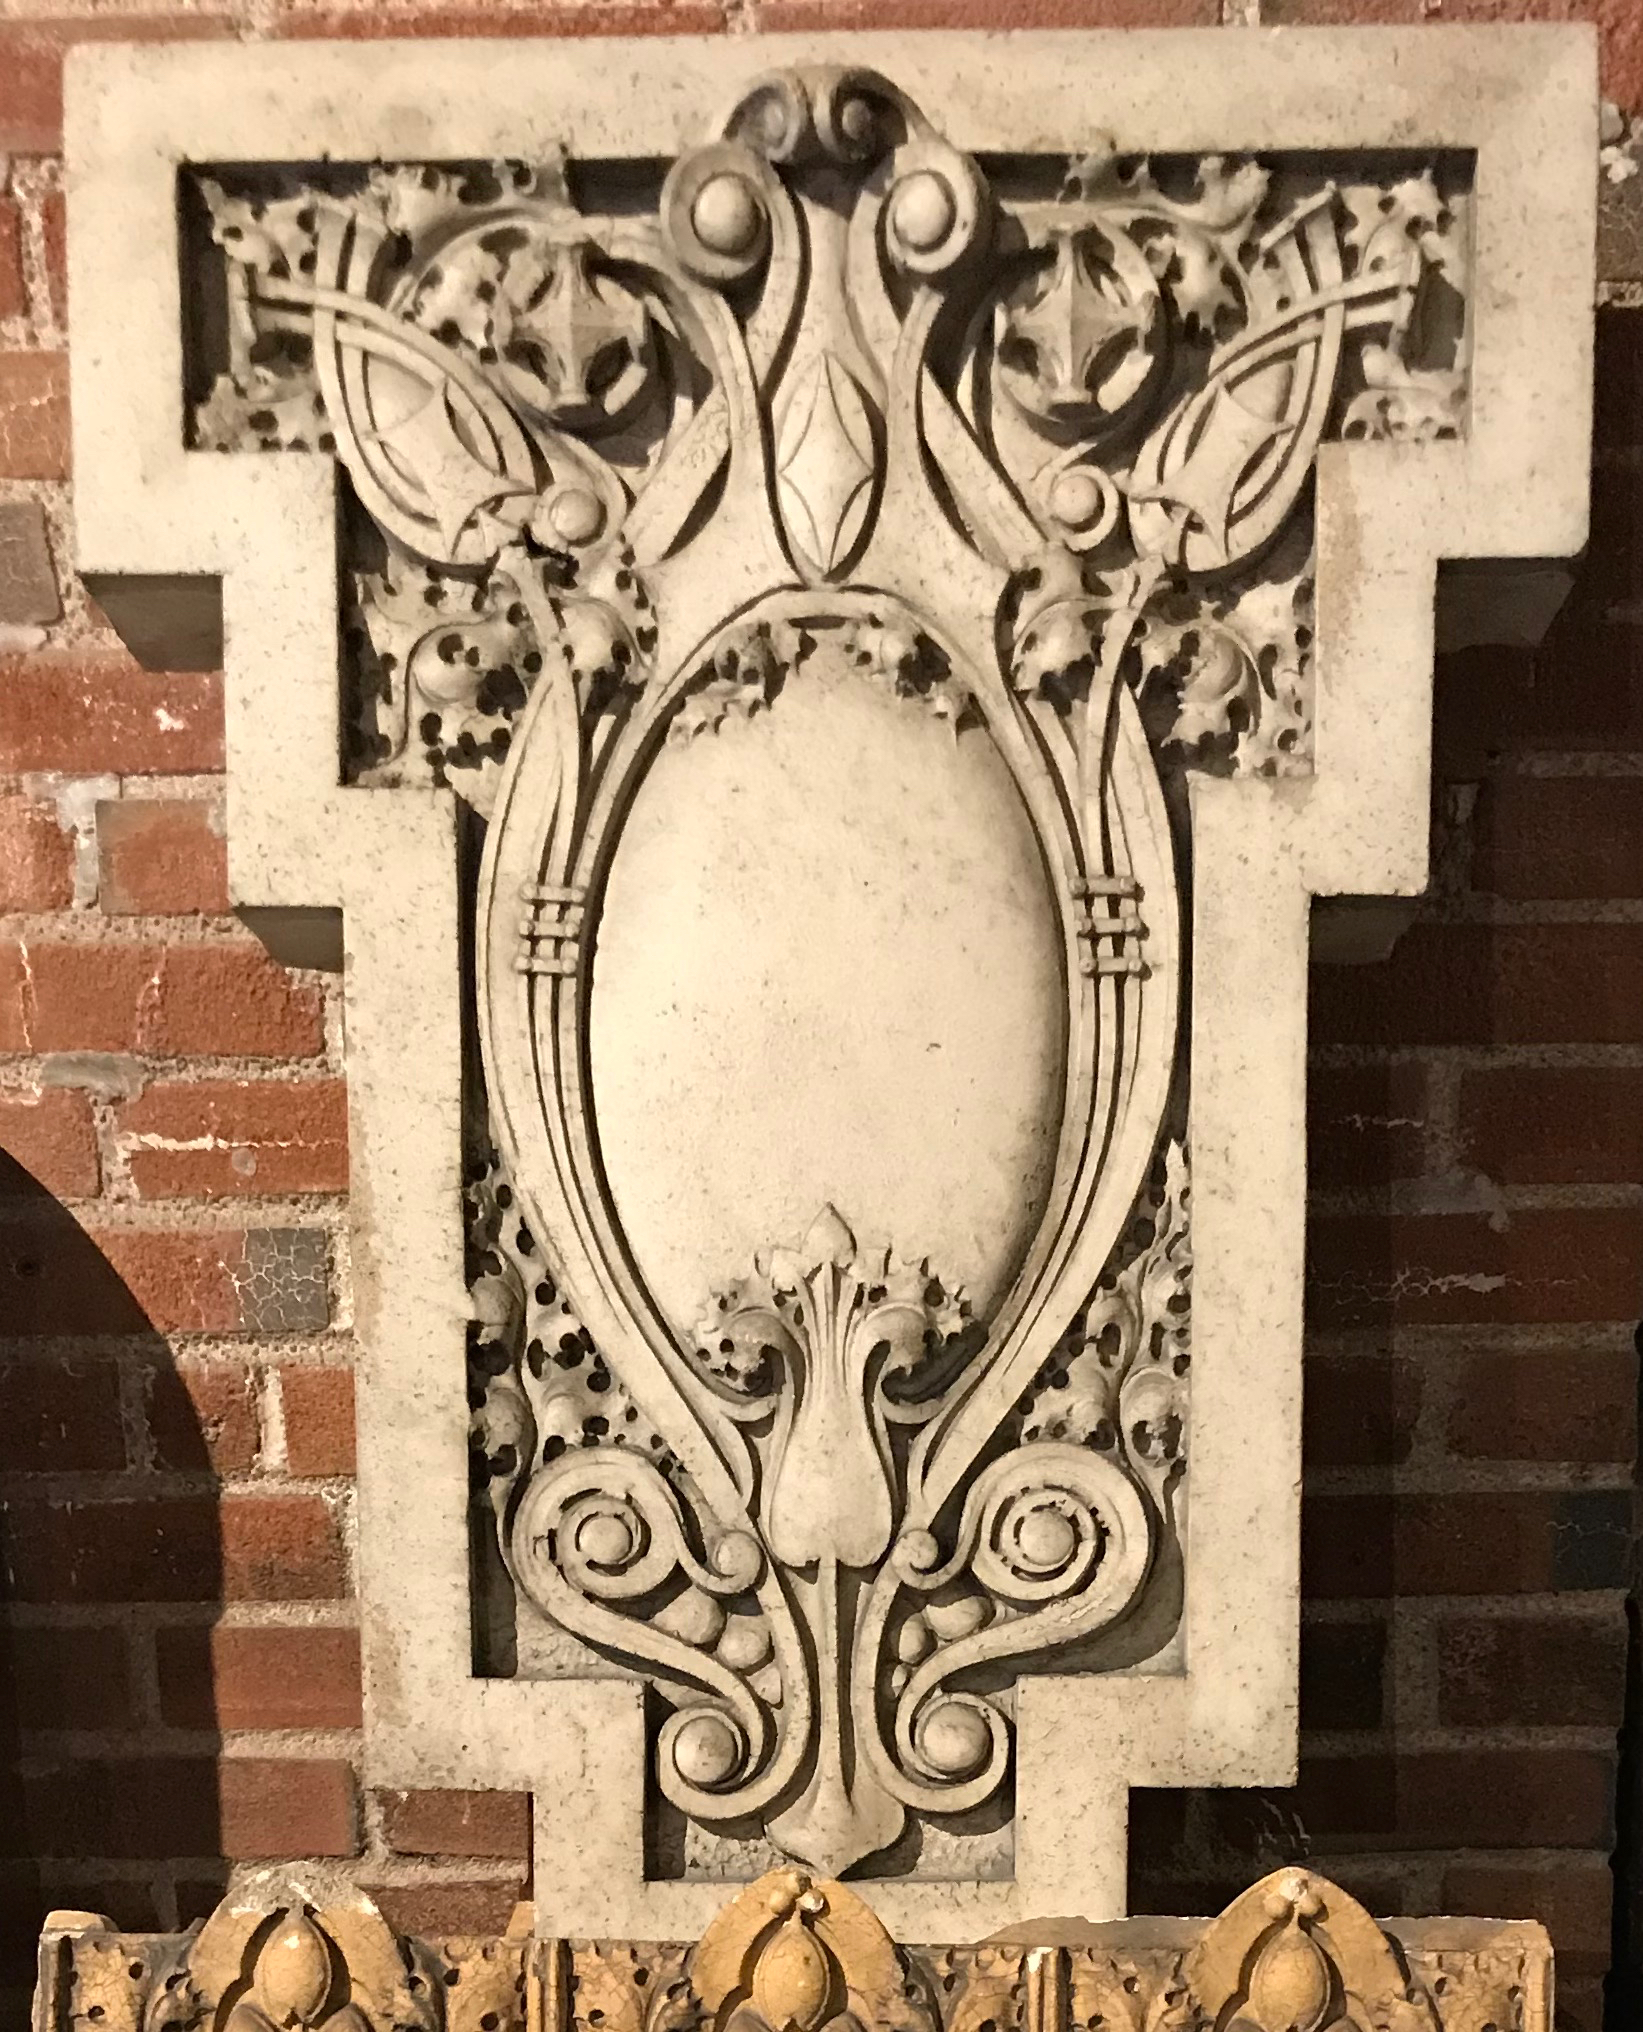 Cast terra cotta salvaged from the Raleigh Residence on Washington Ave. in St. Louis MO.